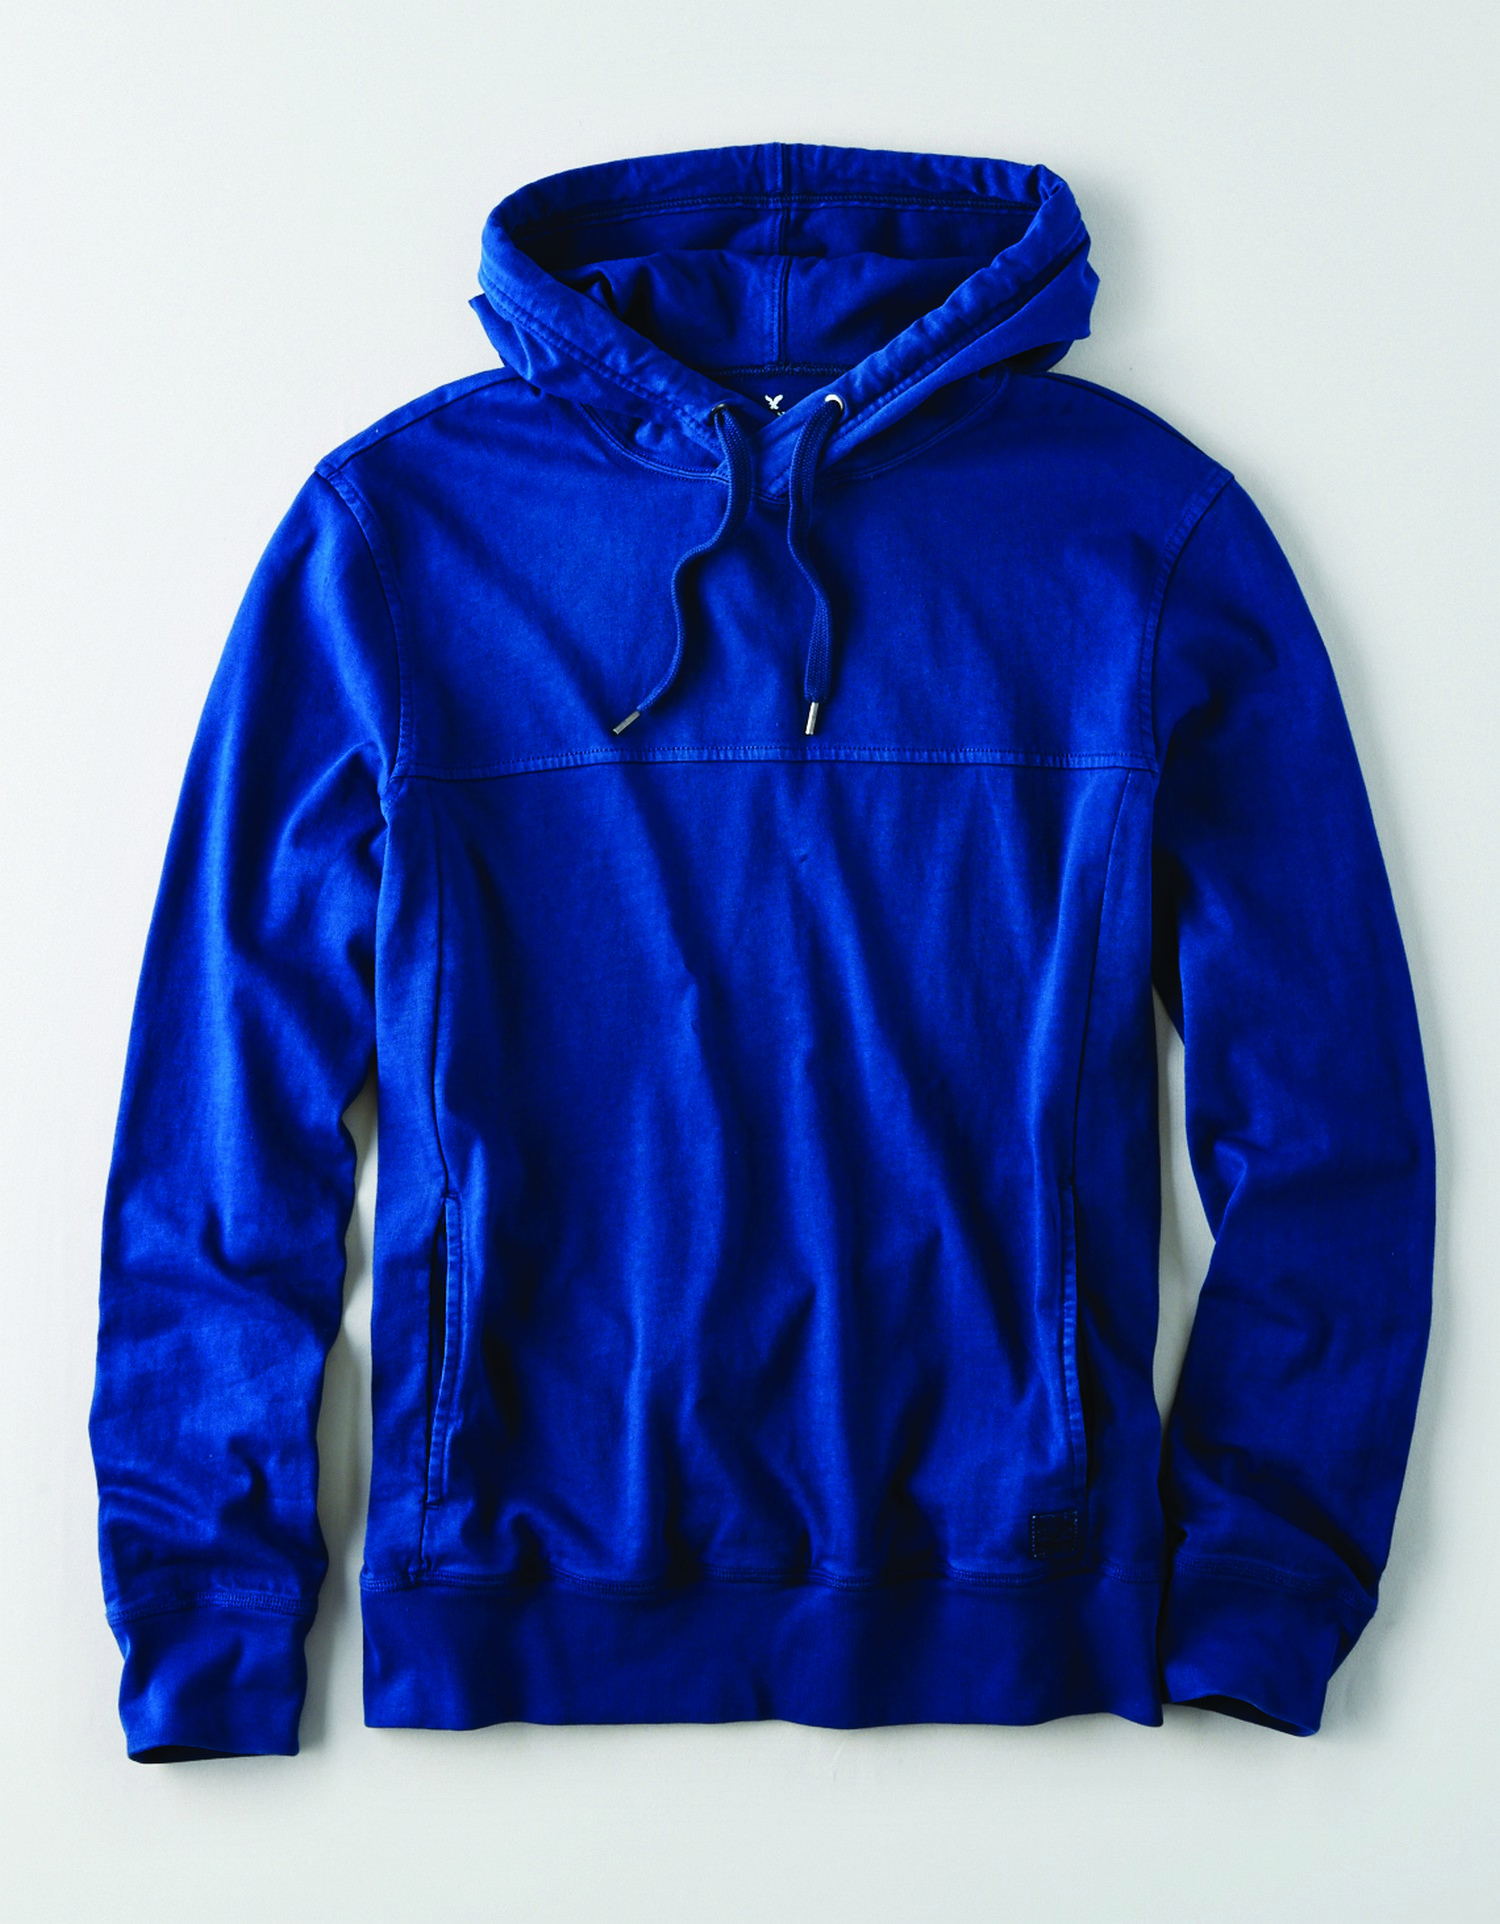 AE - M - Apparel - LS DYED HOODIE - Navy Blue - Solid Color - Plain Hoodie JP *Tracked